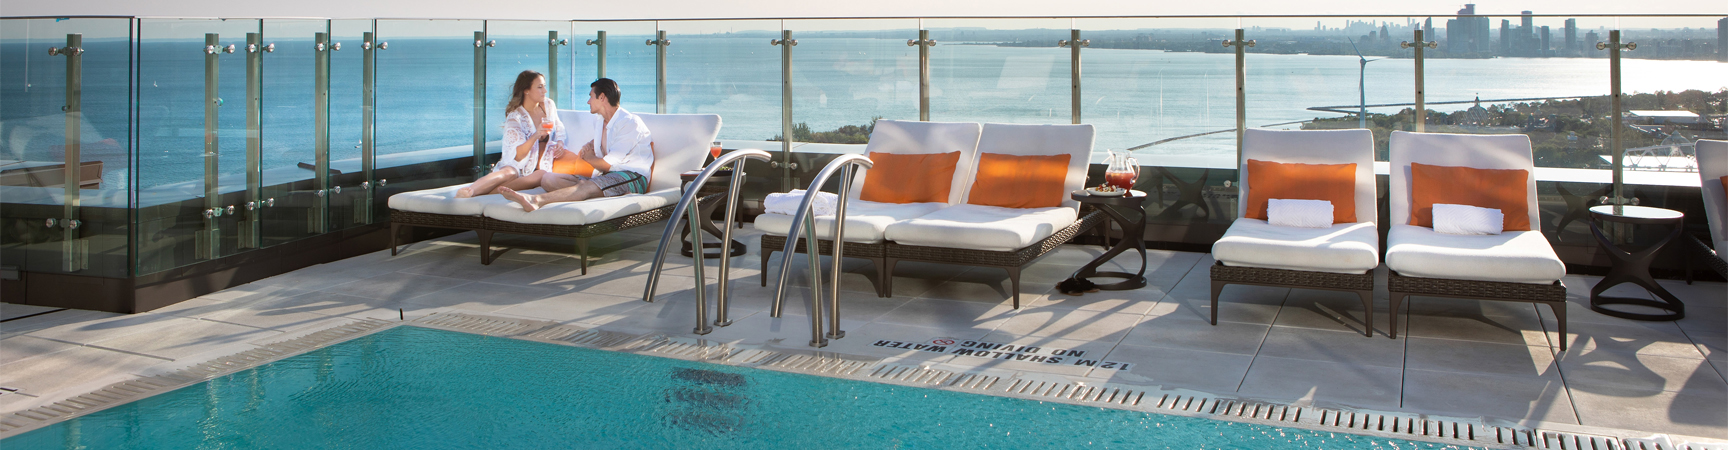 Man and woman sitting by the rooftop pool